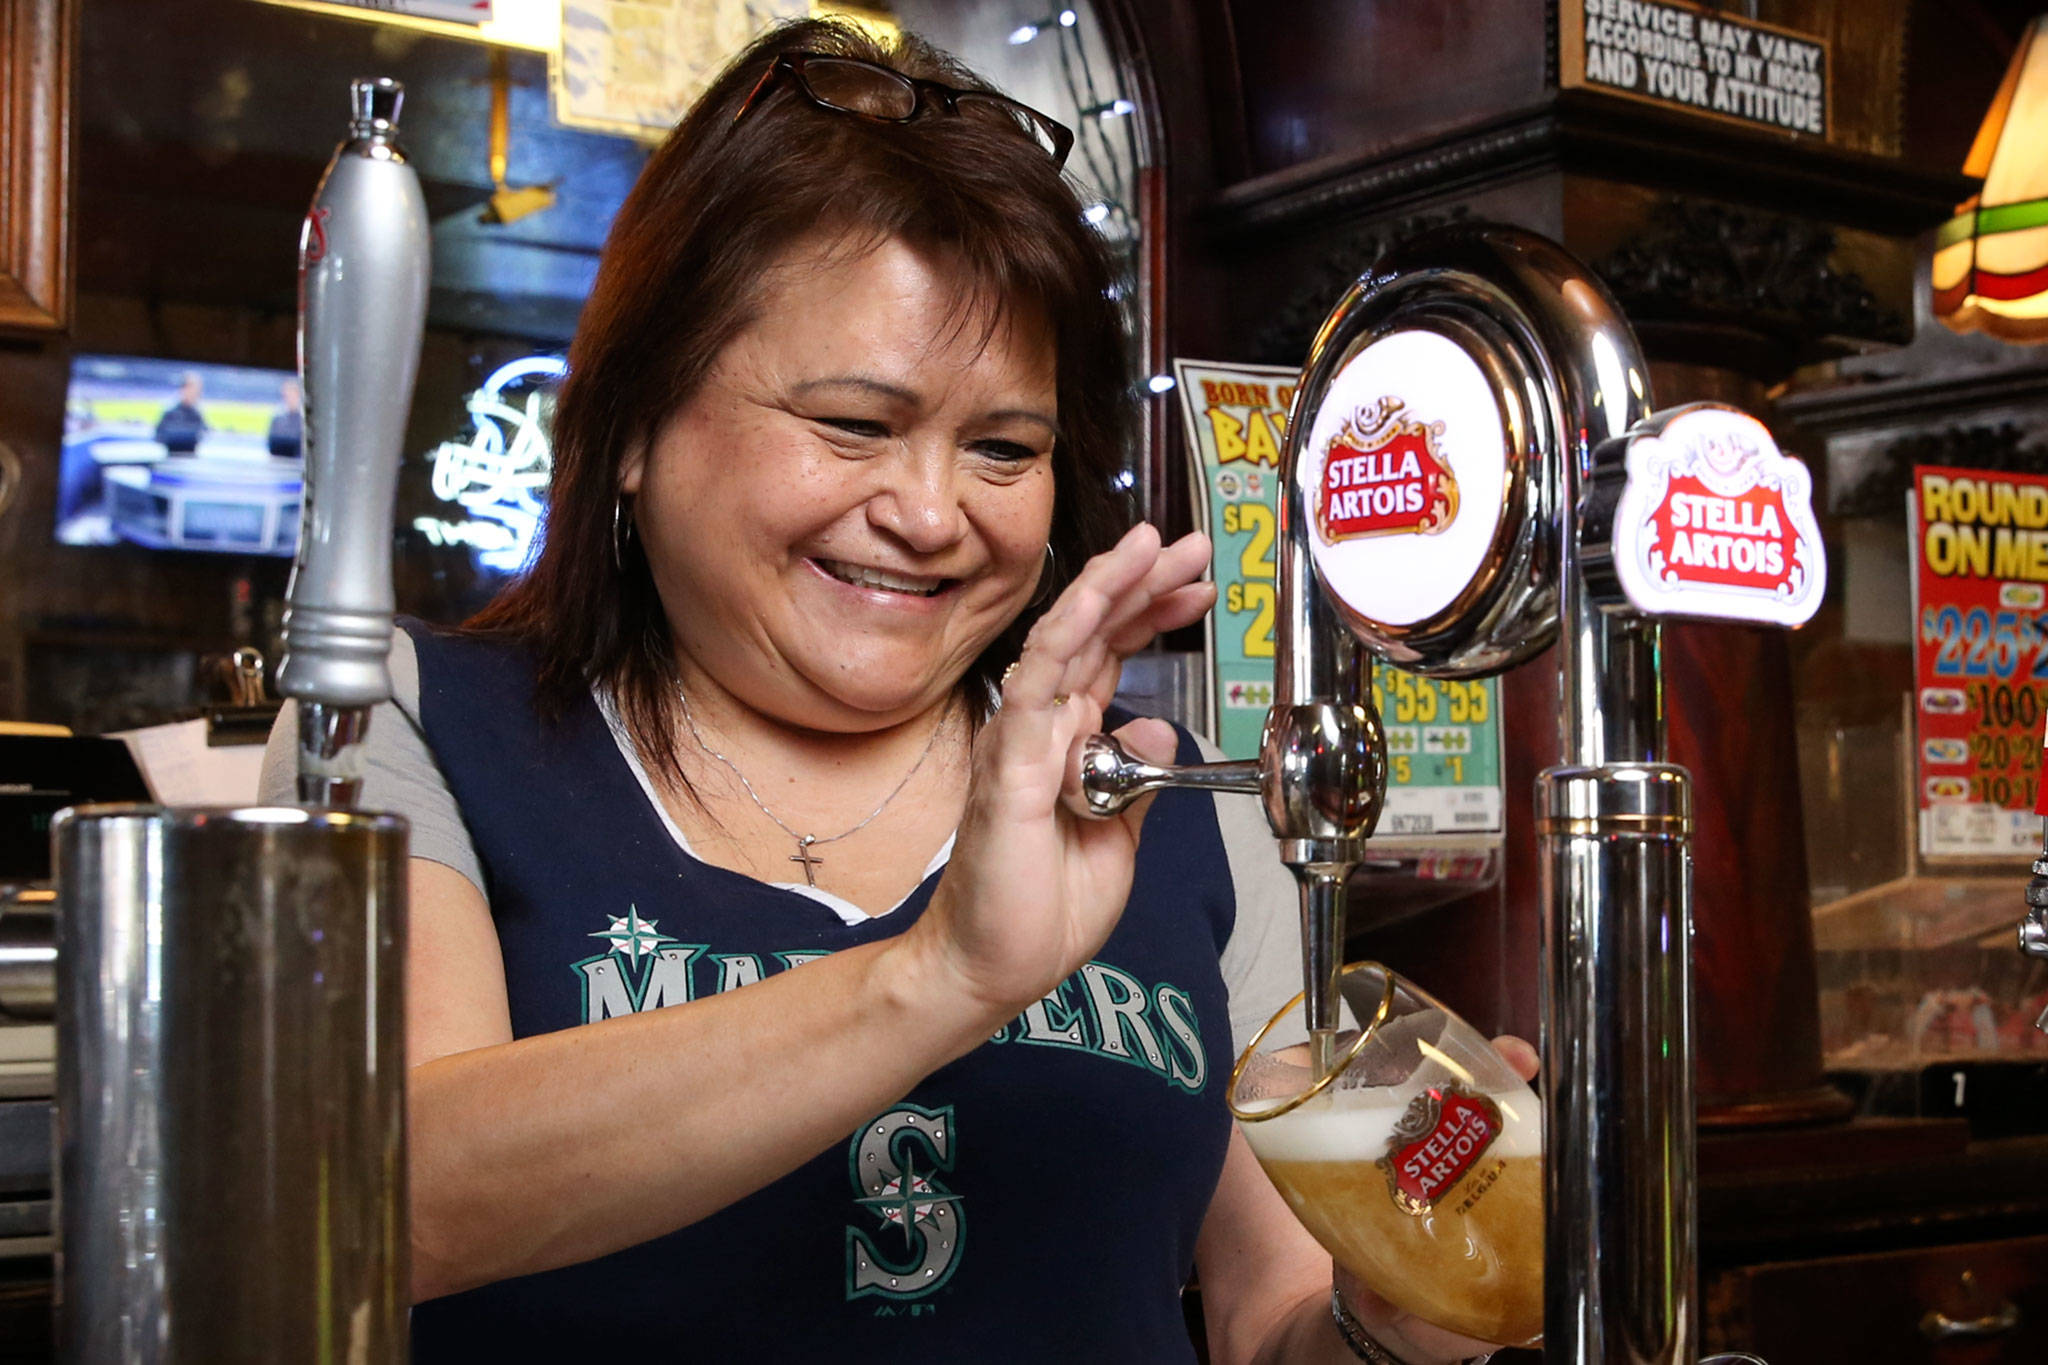 Denise McKenzie, 12-year bartender, pours a beer at Kuhnle's Tavern in Marysville. (Kevin Clark / The Herald)